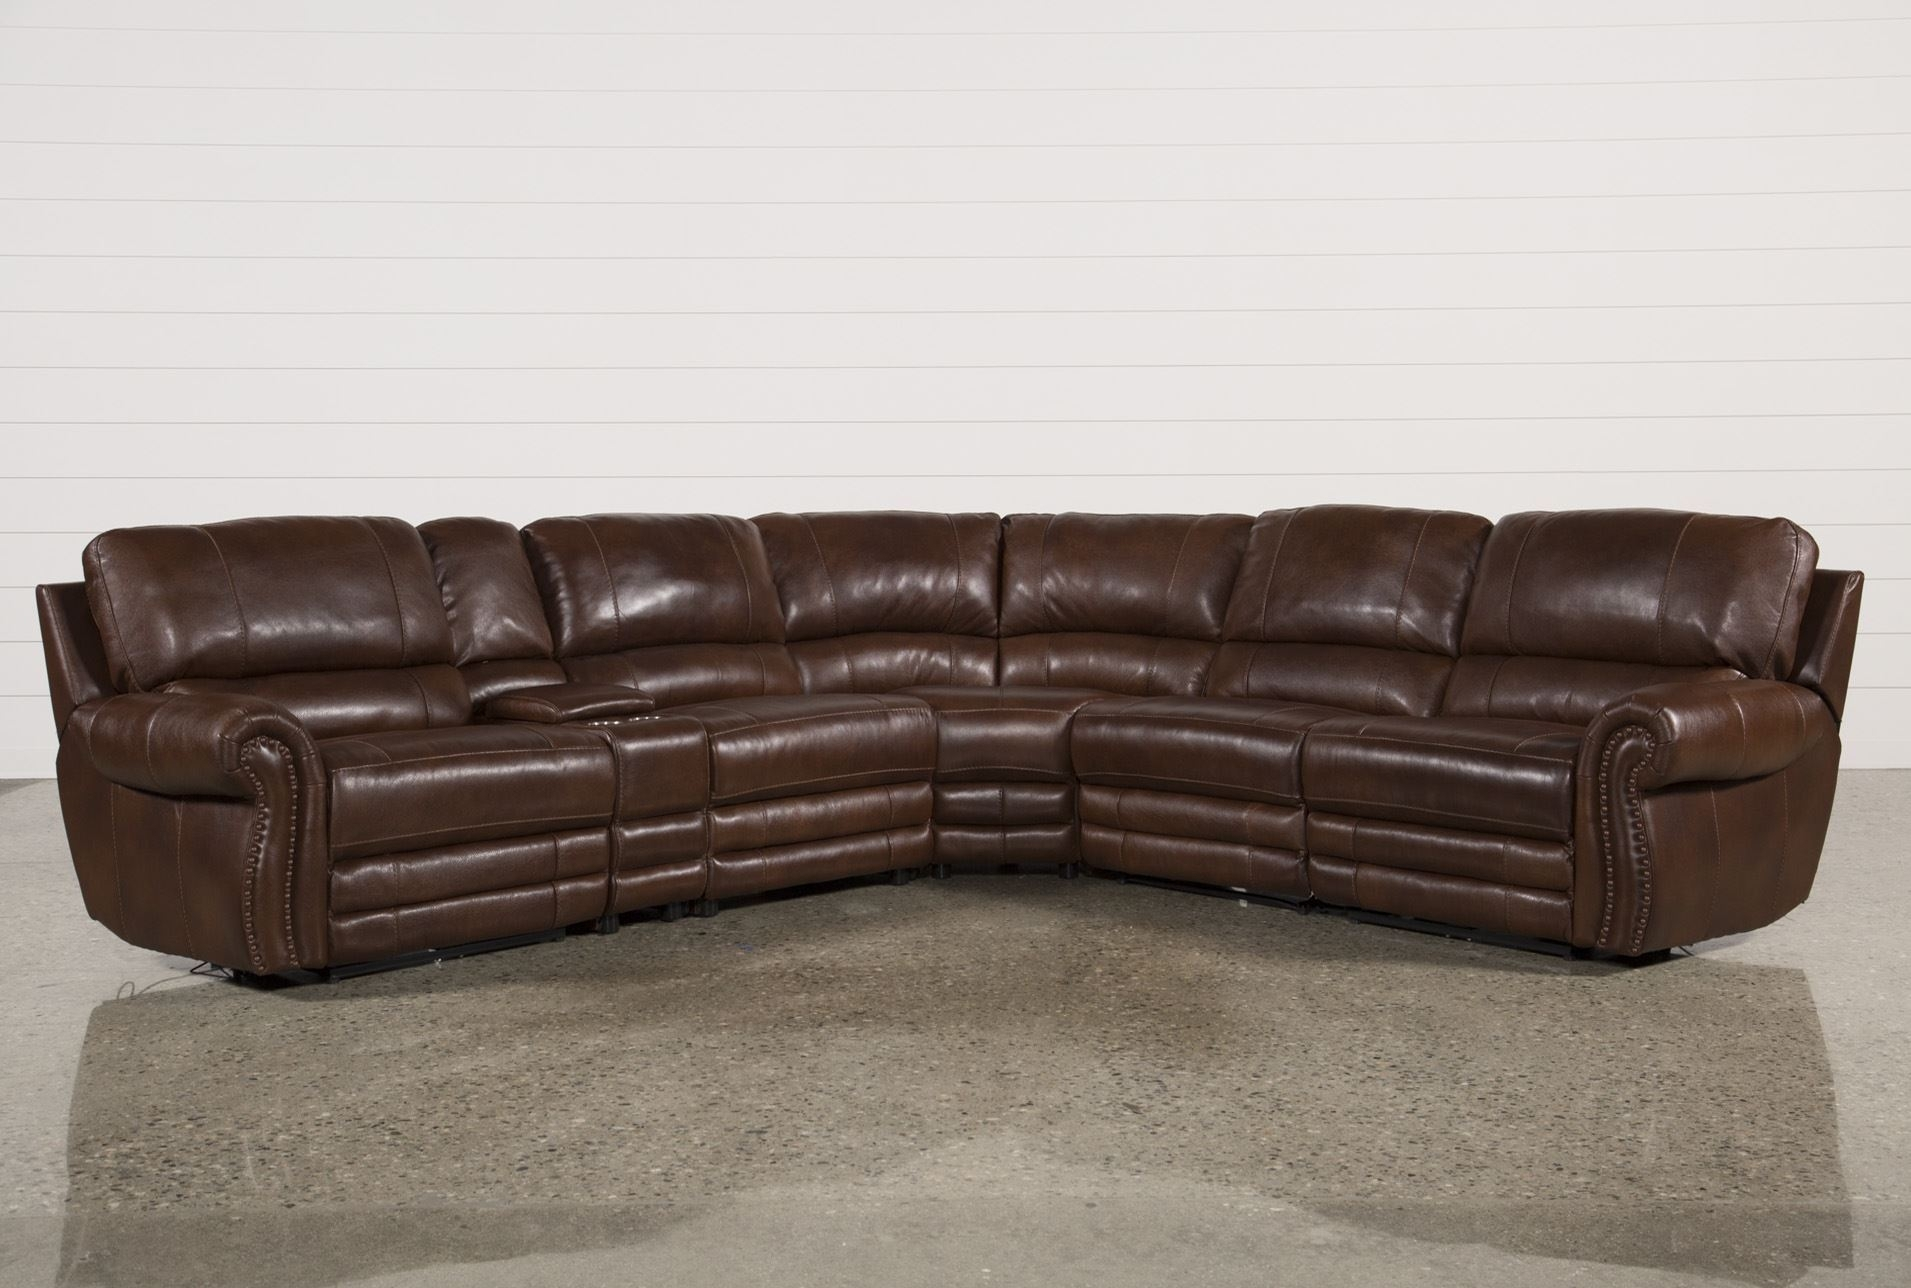 Perfect 6 Piece Leather Sectional Sofa 93 About Remodel With 6 Piece With 6 Piece Leather Sectional Sofas (Image 9 of 10)